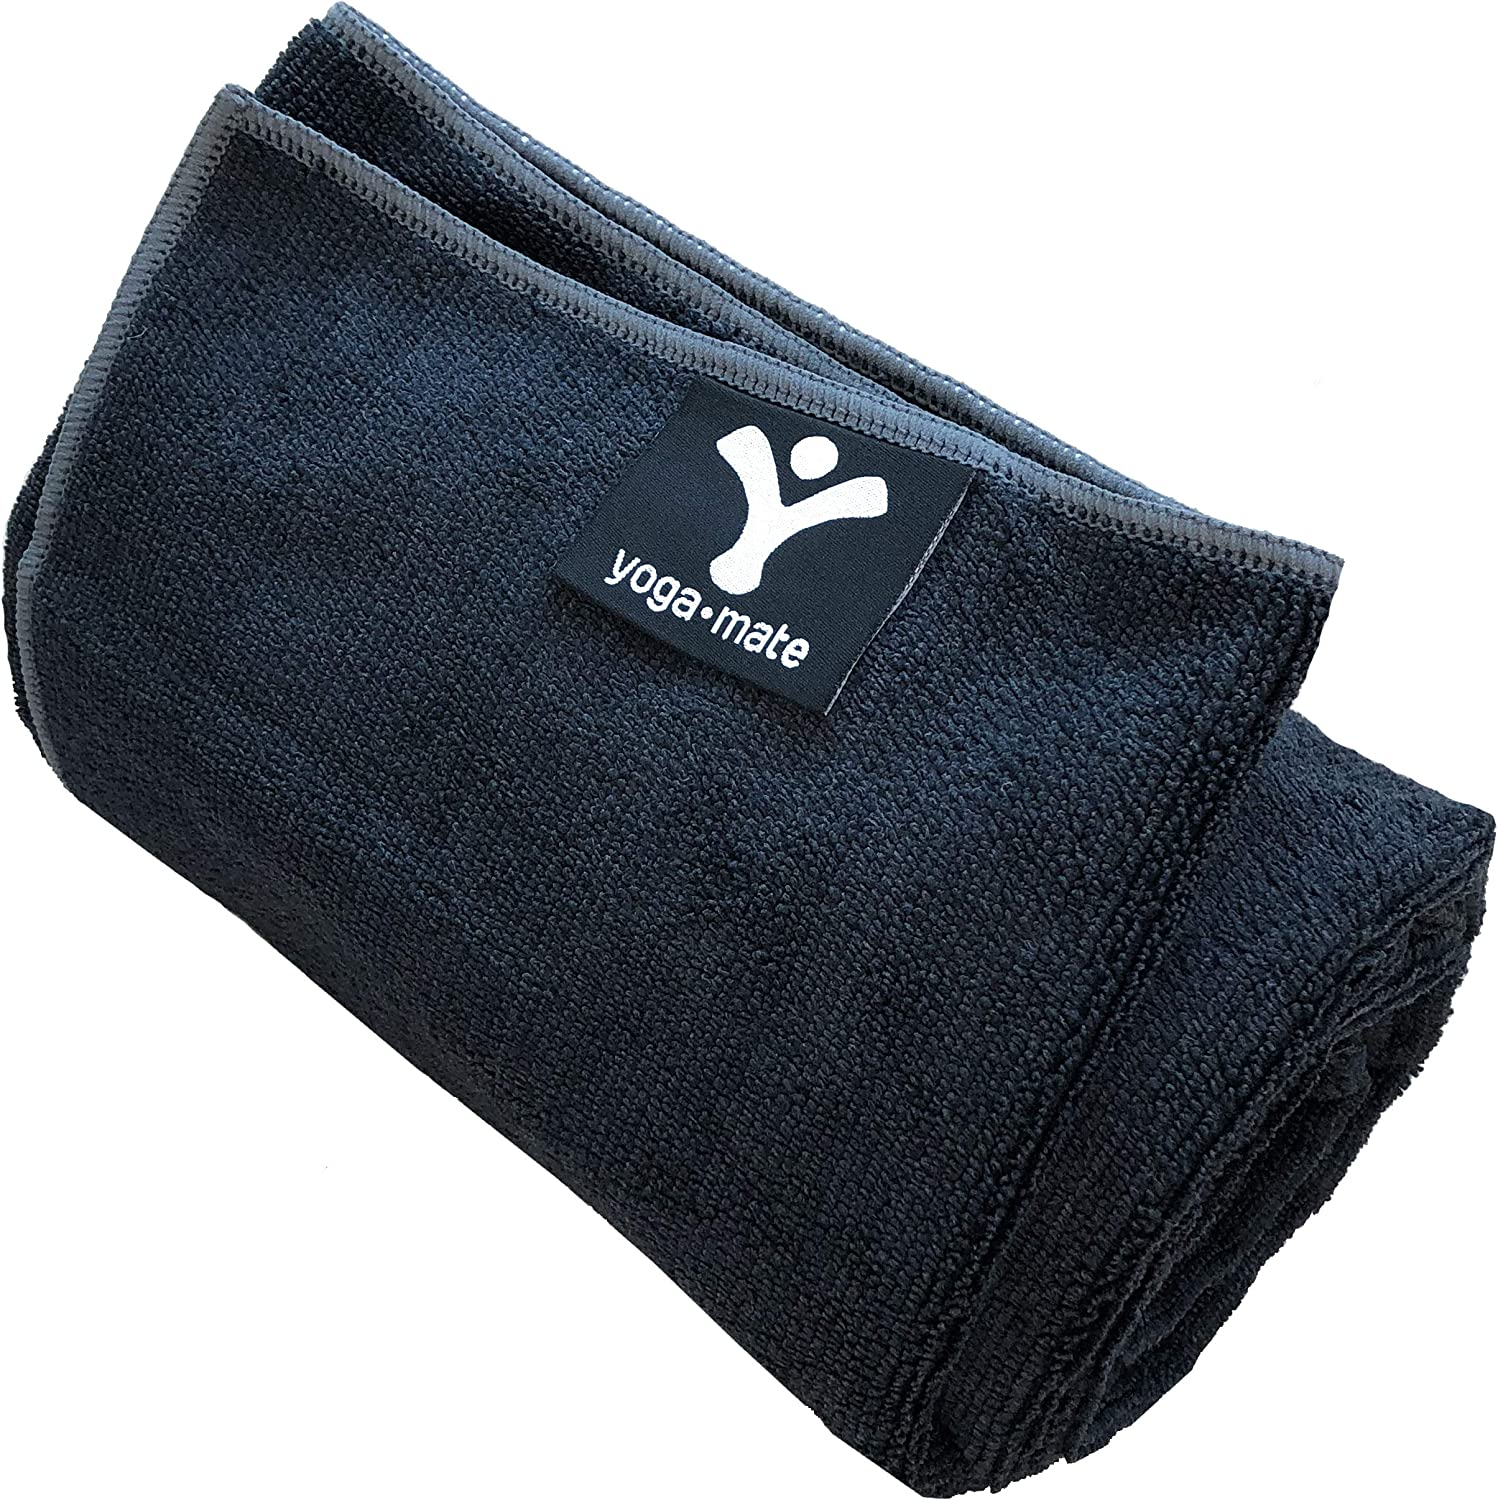 The Perfect Yoga Towel - Super Soft, Sweat Absorbent, Non-Slip Bikram Hot Yoga Towels | Perfect Size for Mat - Ideal for Hot Yoga & Pilates!